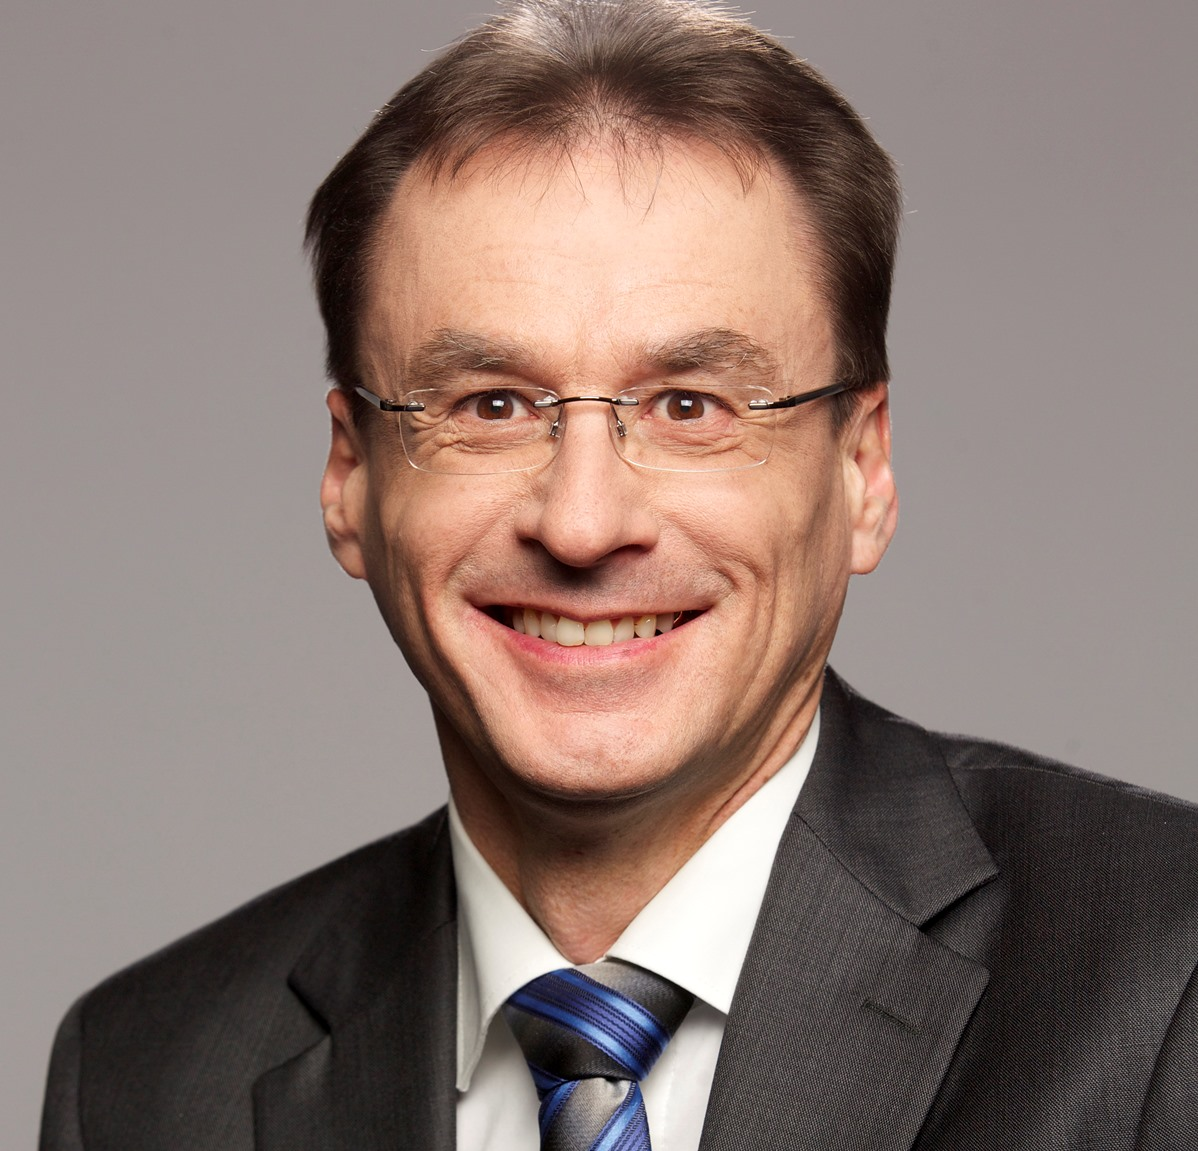 Dietmar Karepin, Business Development Manager Healthcare bei VITRONIC